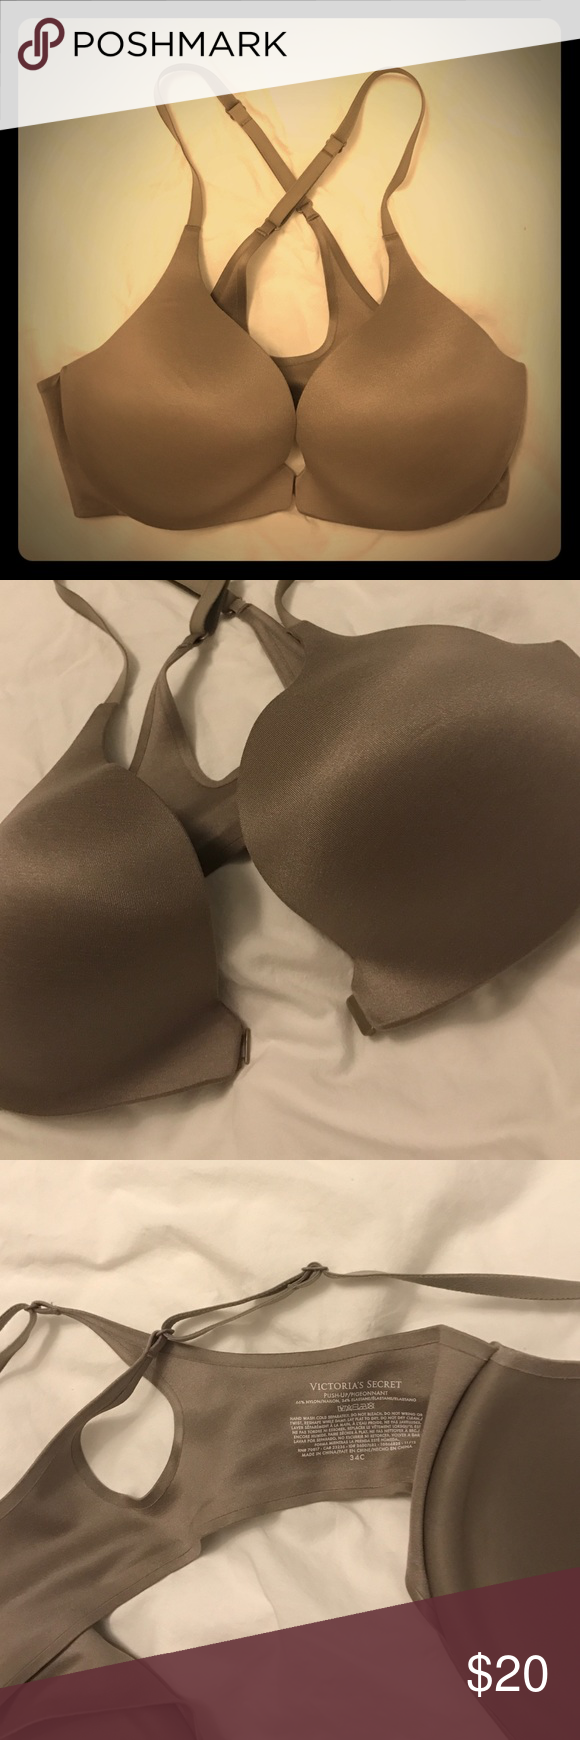 Racerback push-up bra Steel grey color racer-back push-up bra from Victoria's Secret. Comfortable and in good condition. Looks new! Victoria's Secret Intimates & Sleepwear Bras